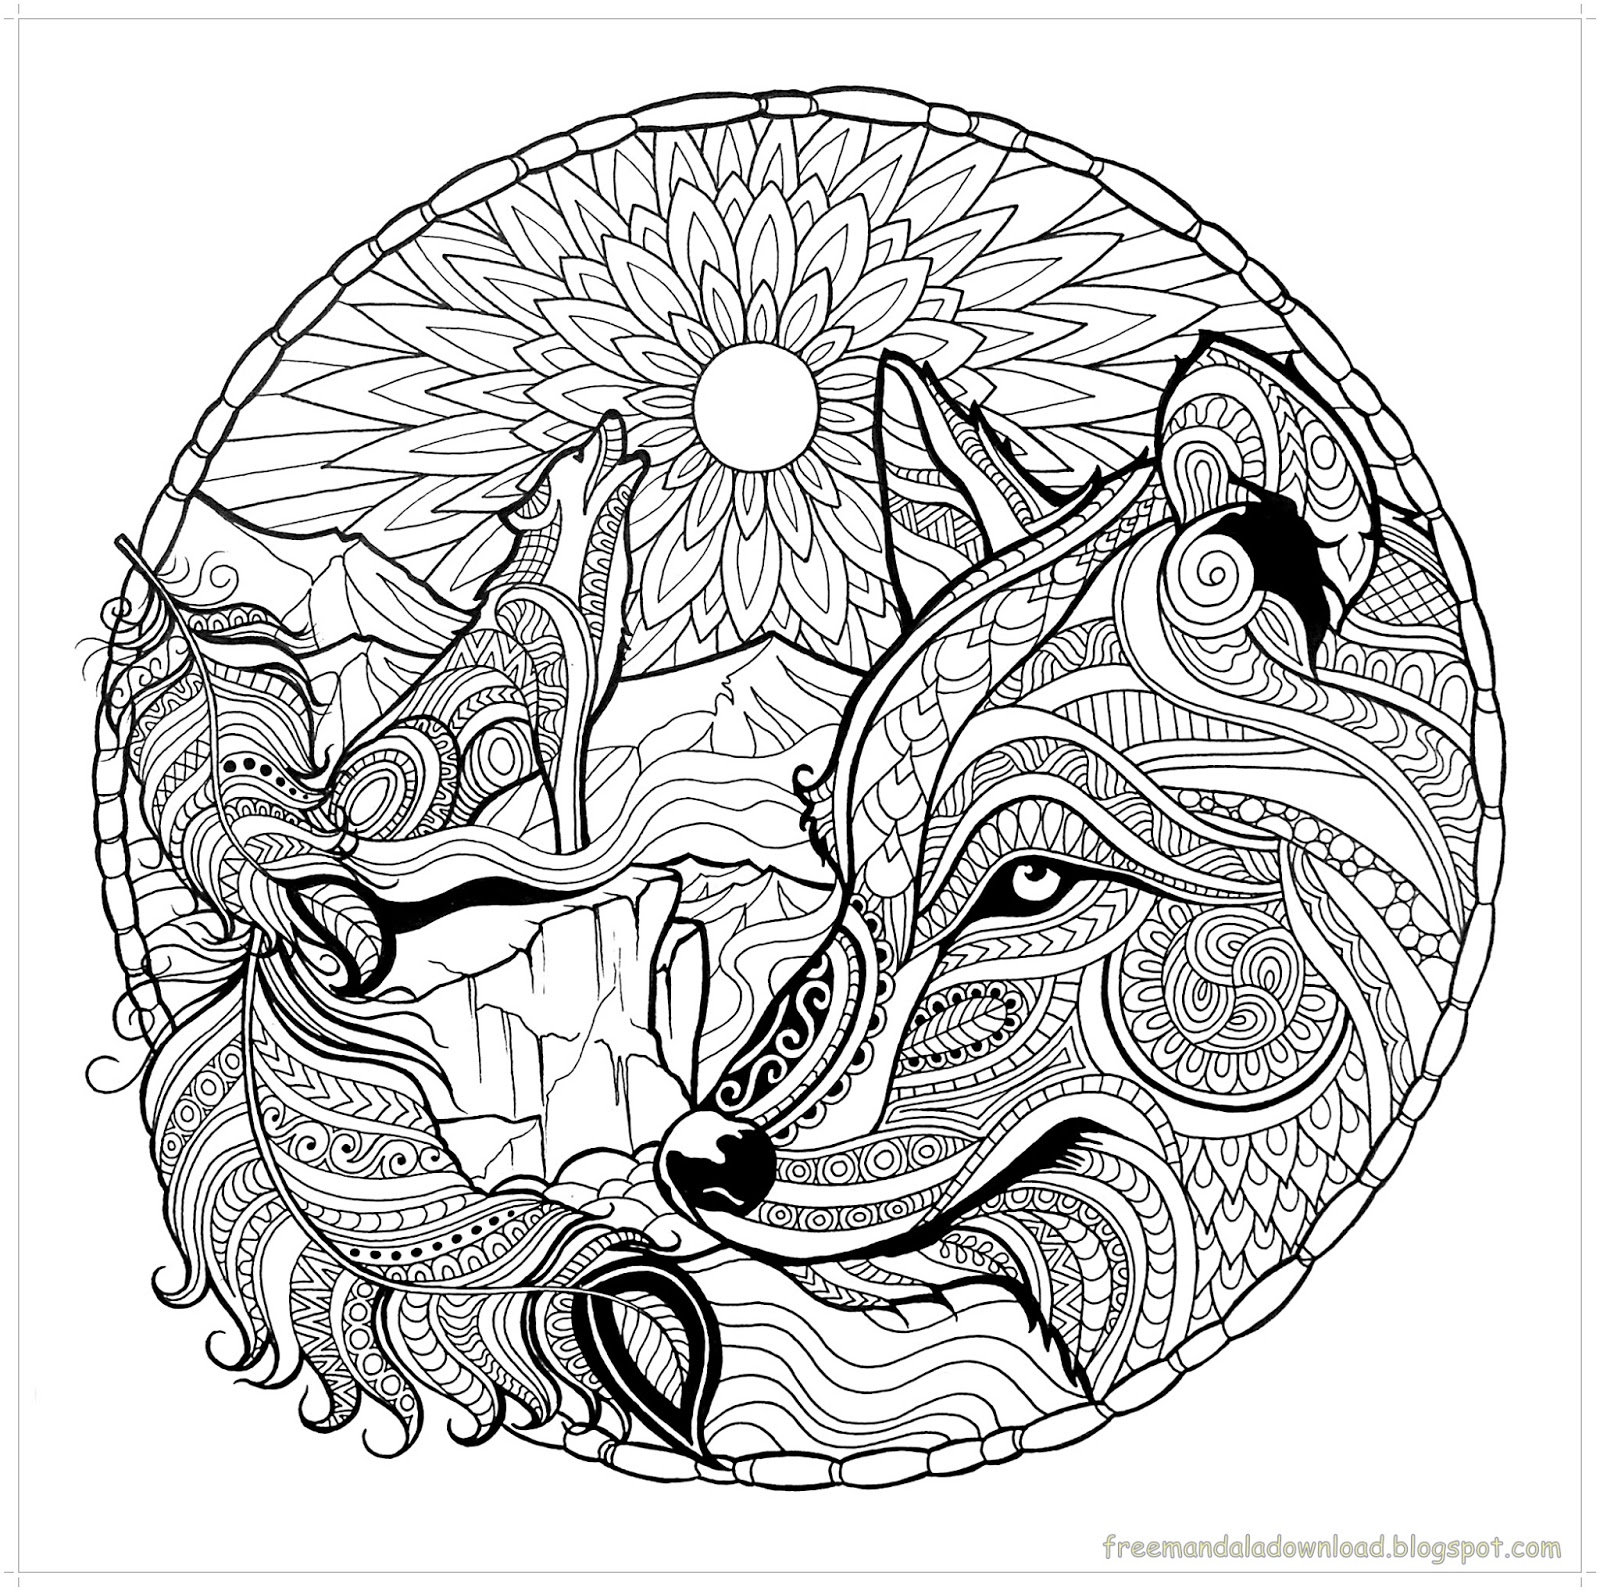 Malvorlagen wolf mandala hohe qualit t wolf mandala for Coloring pages of wolfs